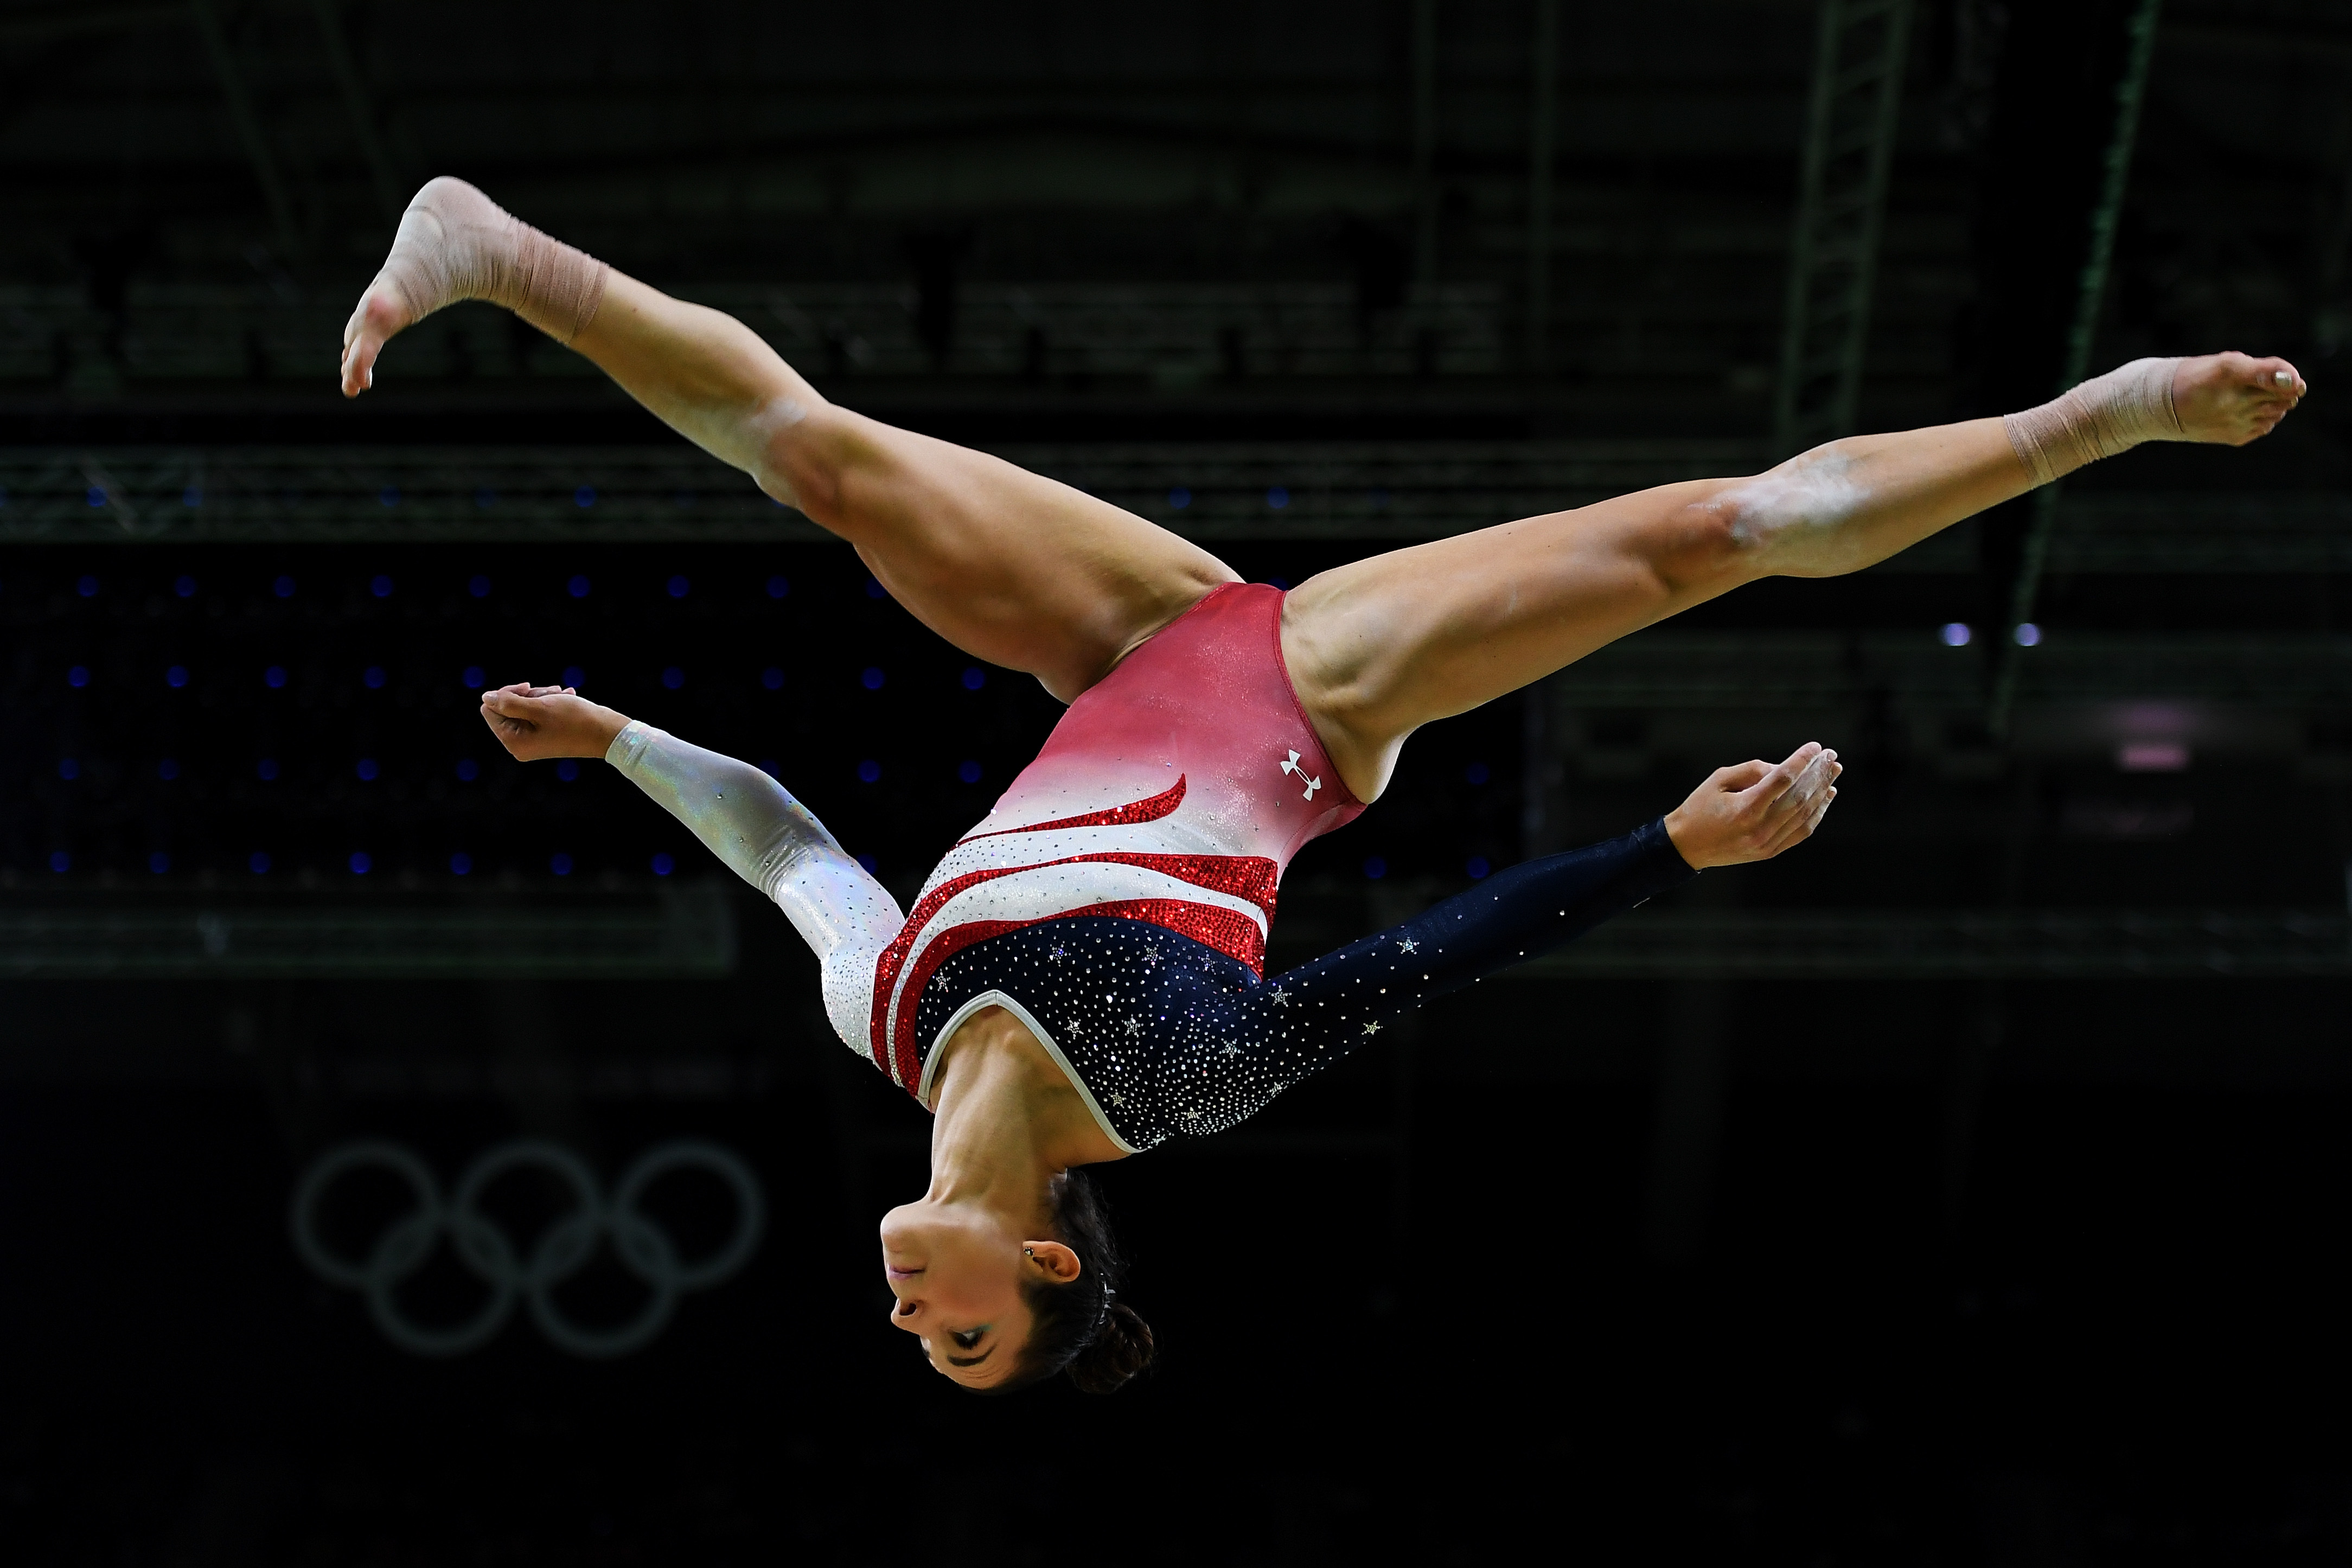 RIO DE JANEIRO, BRAZIL - AUGUST 09: Alexandra Raisman of the United States competes on the balance beam during the Artistic Gymnastics Women's Team Final on Day 4 of the Rio 2016 Olympic Games at the Rio Olympic Arena on August 9, 2016 in Rio de Janeiro, Brazil. (Photo by Laurence Griffiths/Getty Images)